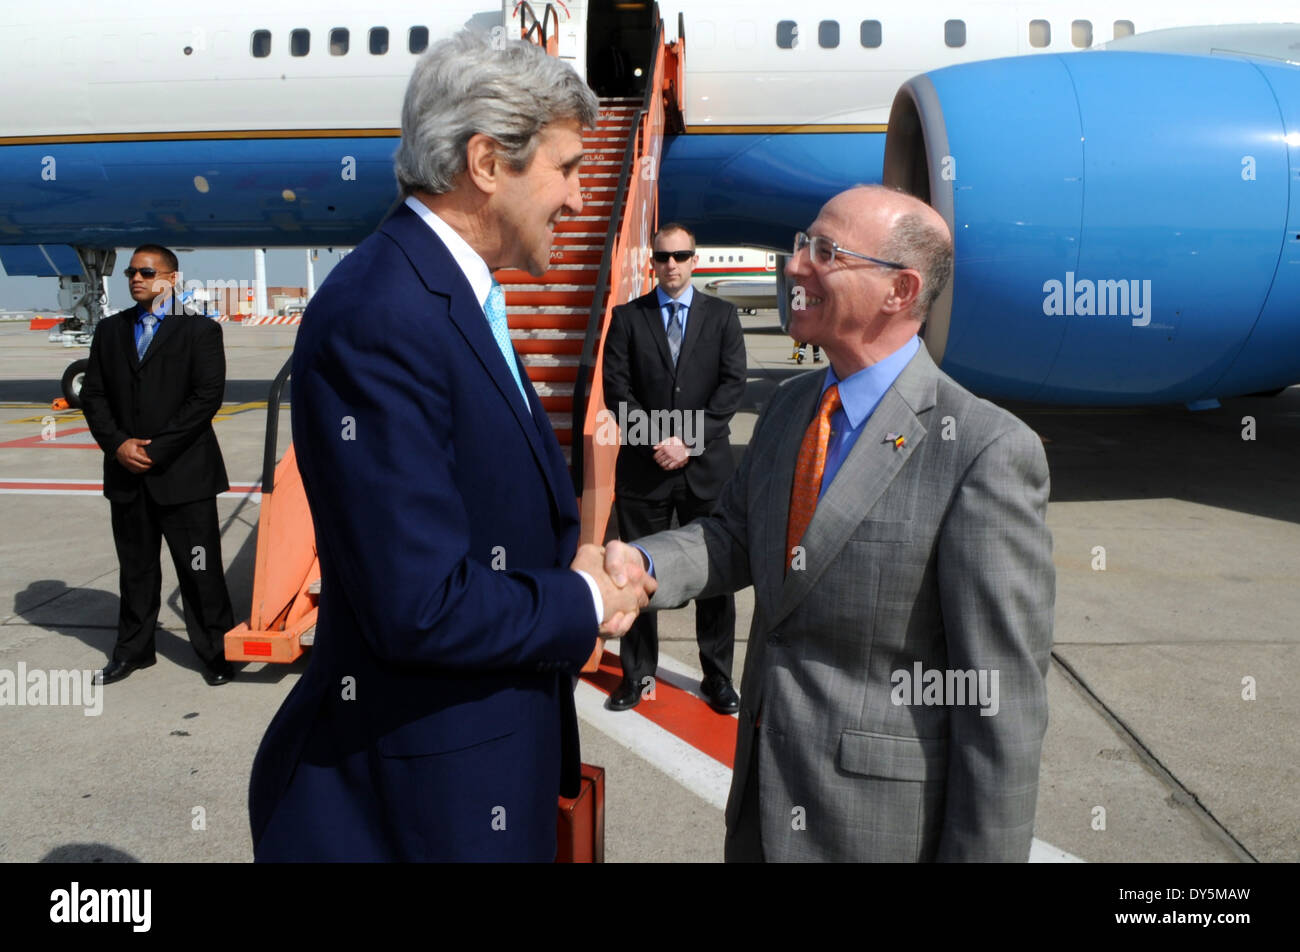 Charge d'Affaires Storella Welcomes Secretary Kerry to Brussels for NATO Ministerial - Stock Image